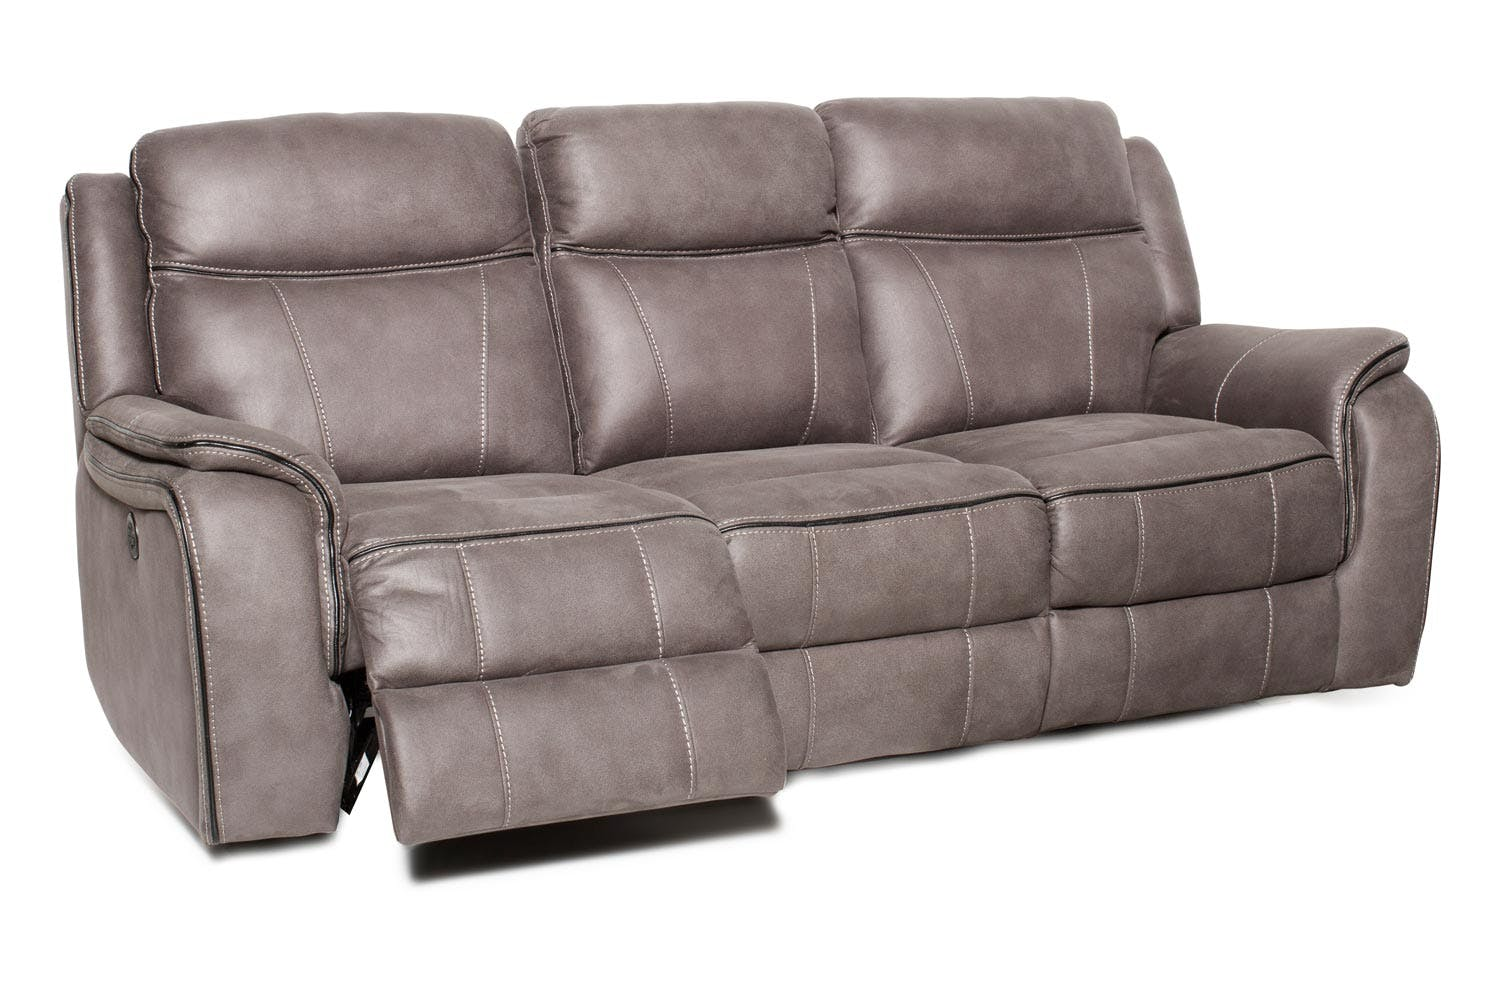 Amazing Lisbon 3 Seater Sofa Console Pdpeps Interior Chair Design Pdpepsorg